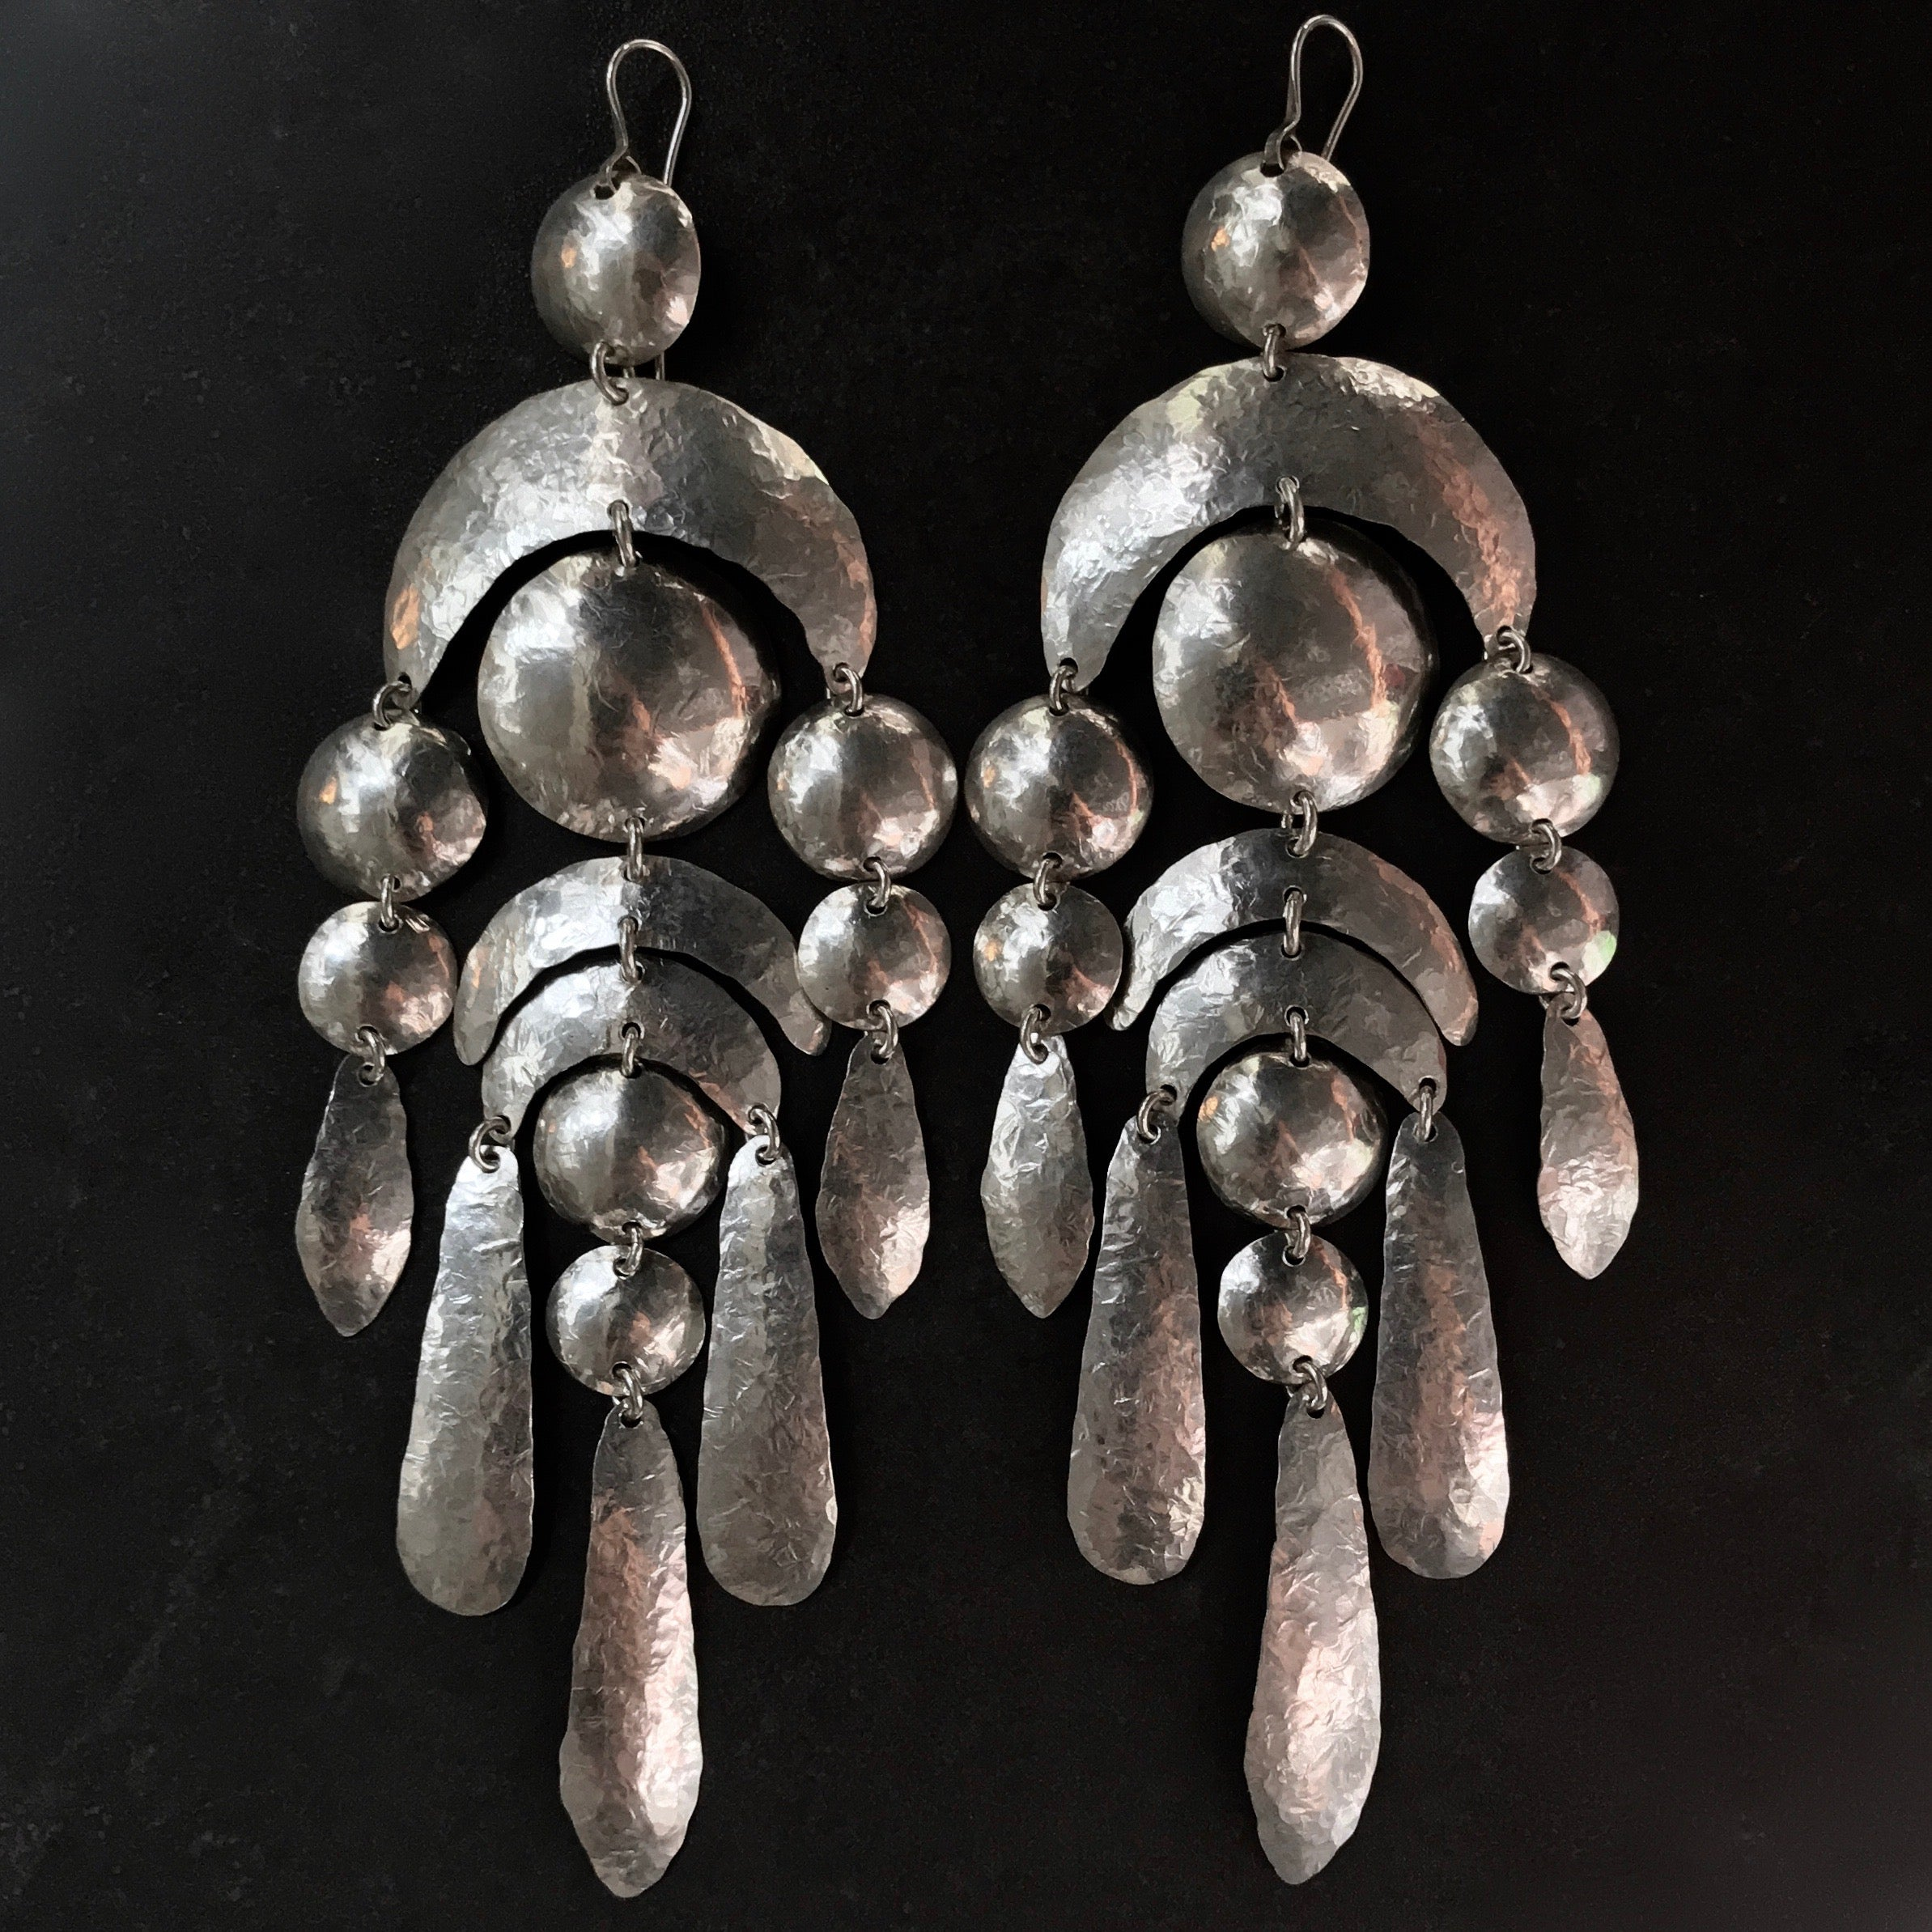 MILA0104 Wild Party earrings  by herosisters - Luxury handmade silver jewelry and accessories